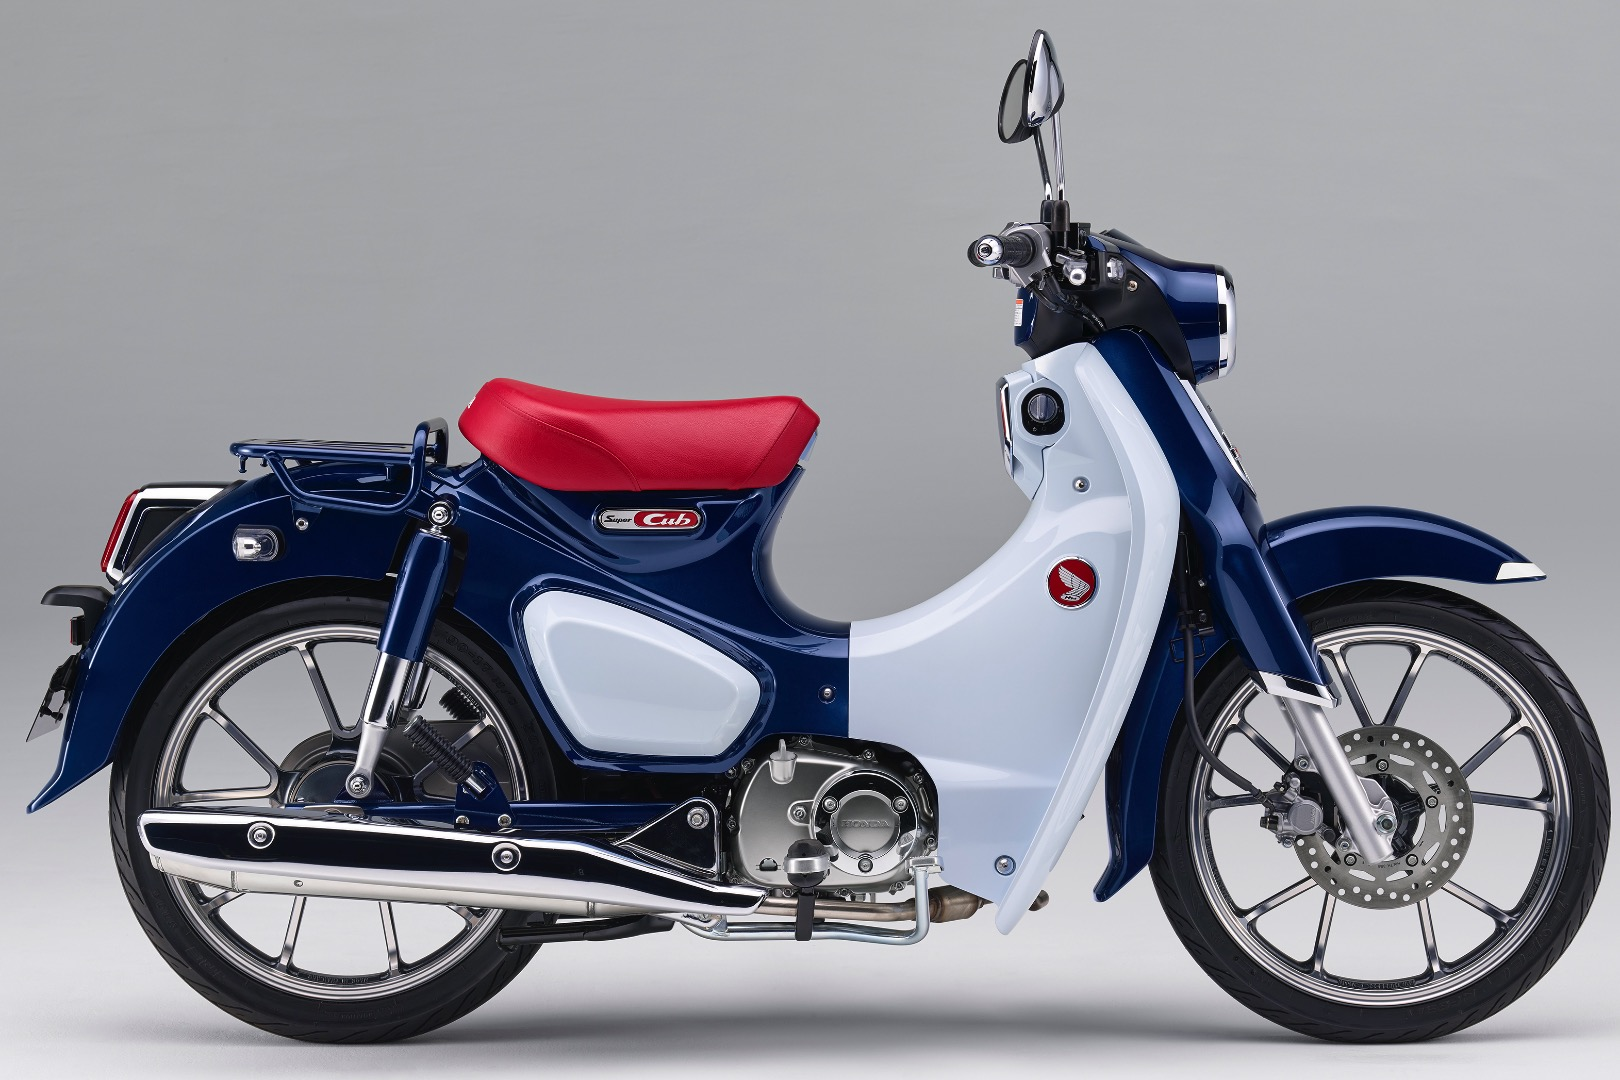 2019 honda super cub c125 abs first look 9 fast facts. Black Bedroom Furniture Sets. Home Design Ideas